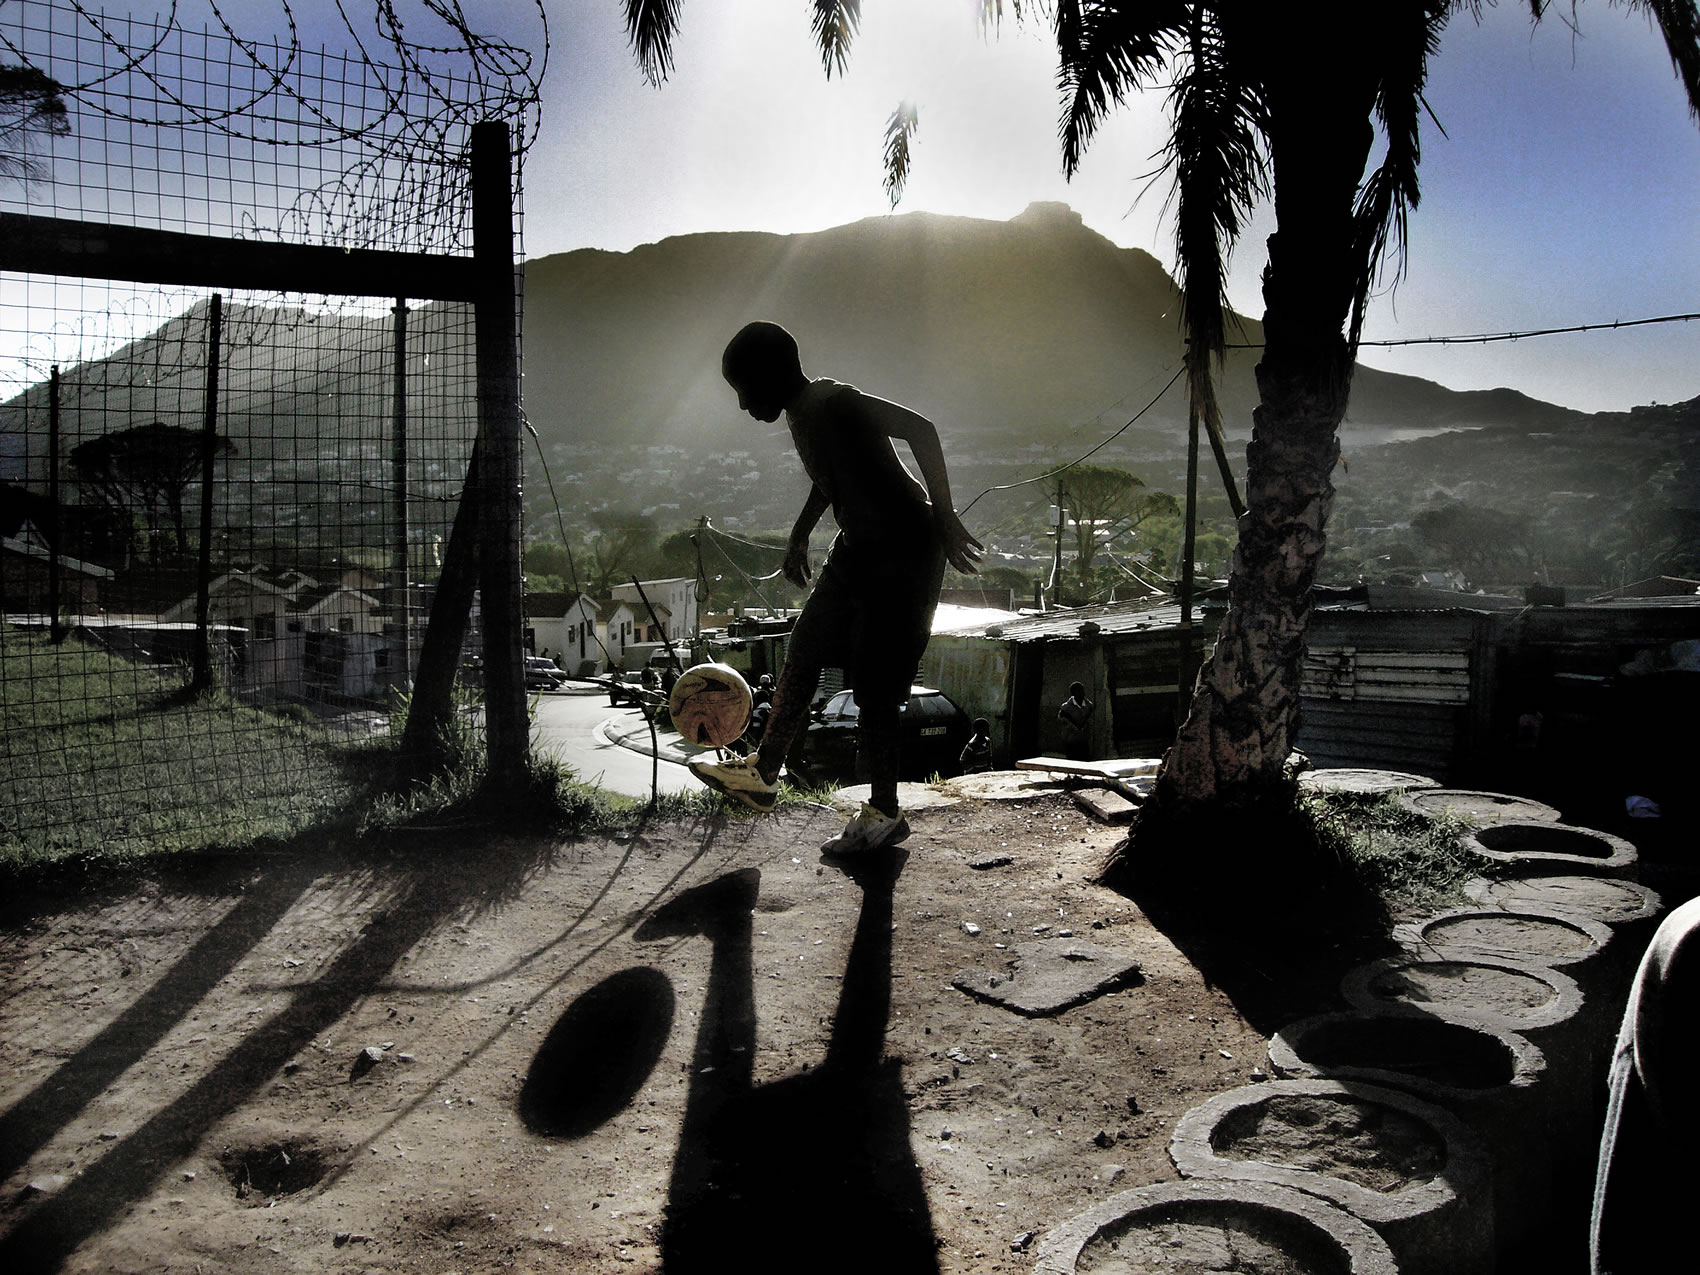 youngster plays football in south Africa township